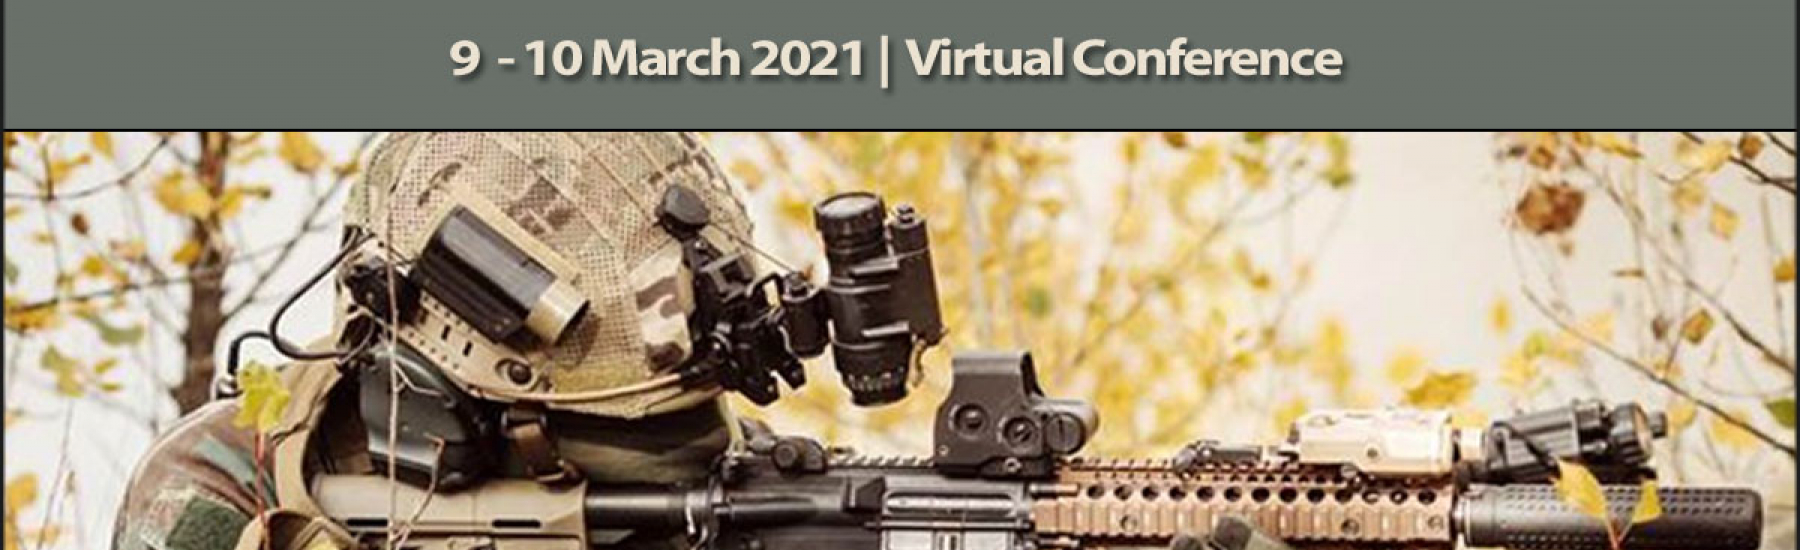 Future Soldier Technology 2021 (Virtual Conference)